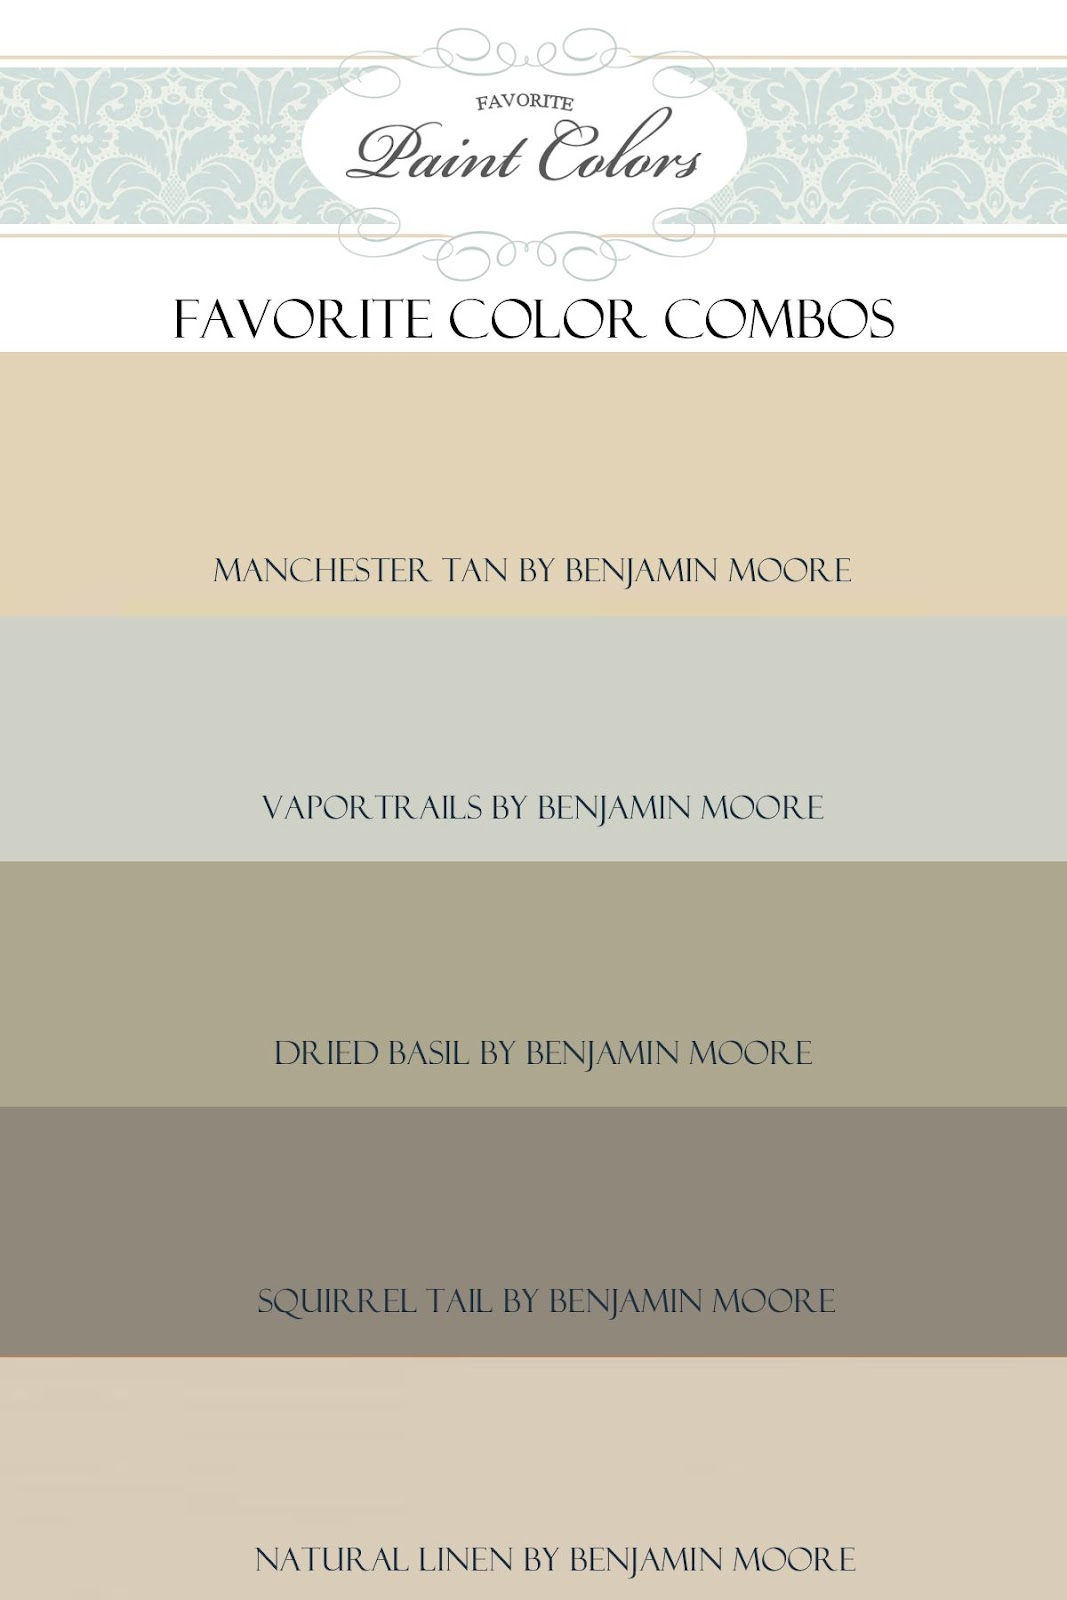 Favorite paint colors june 2012 for Neutral cream paint color